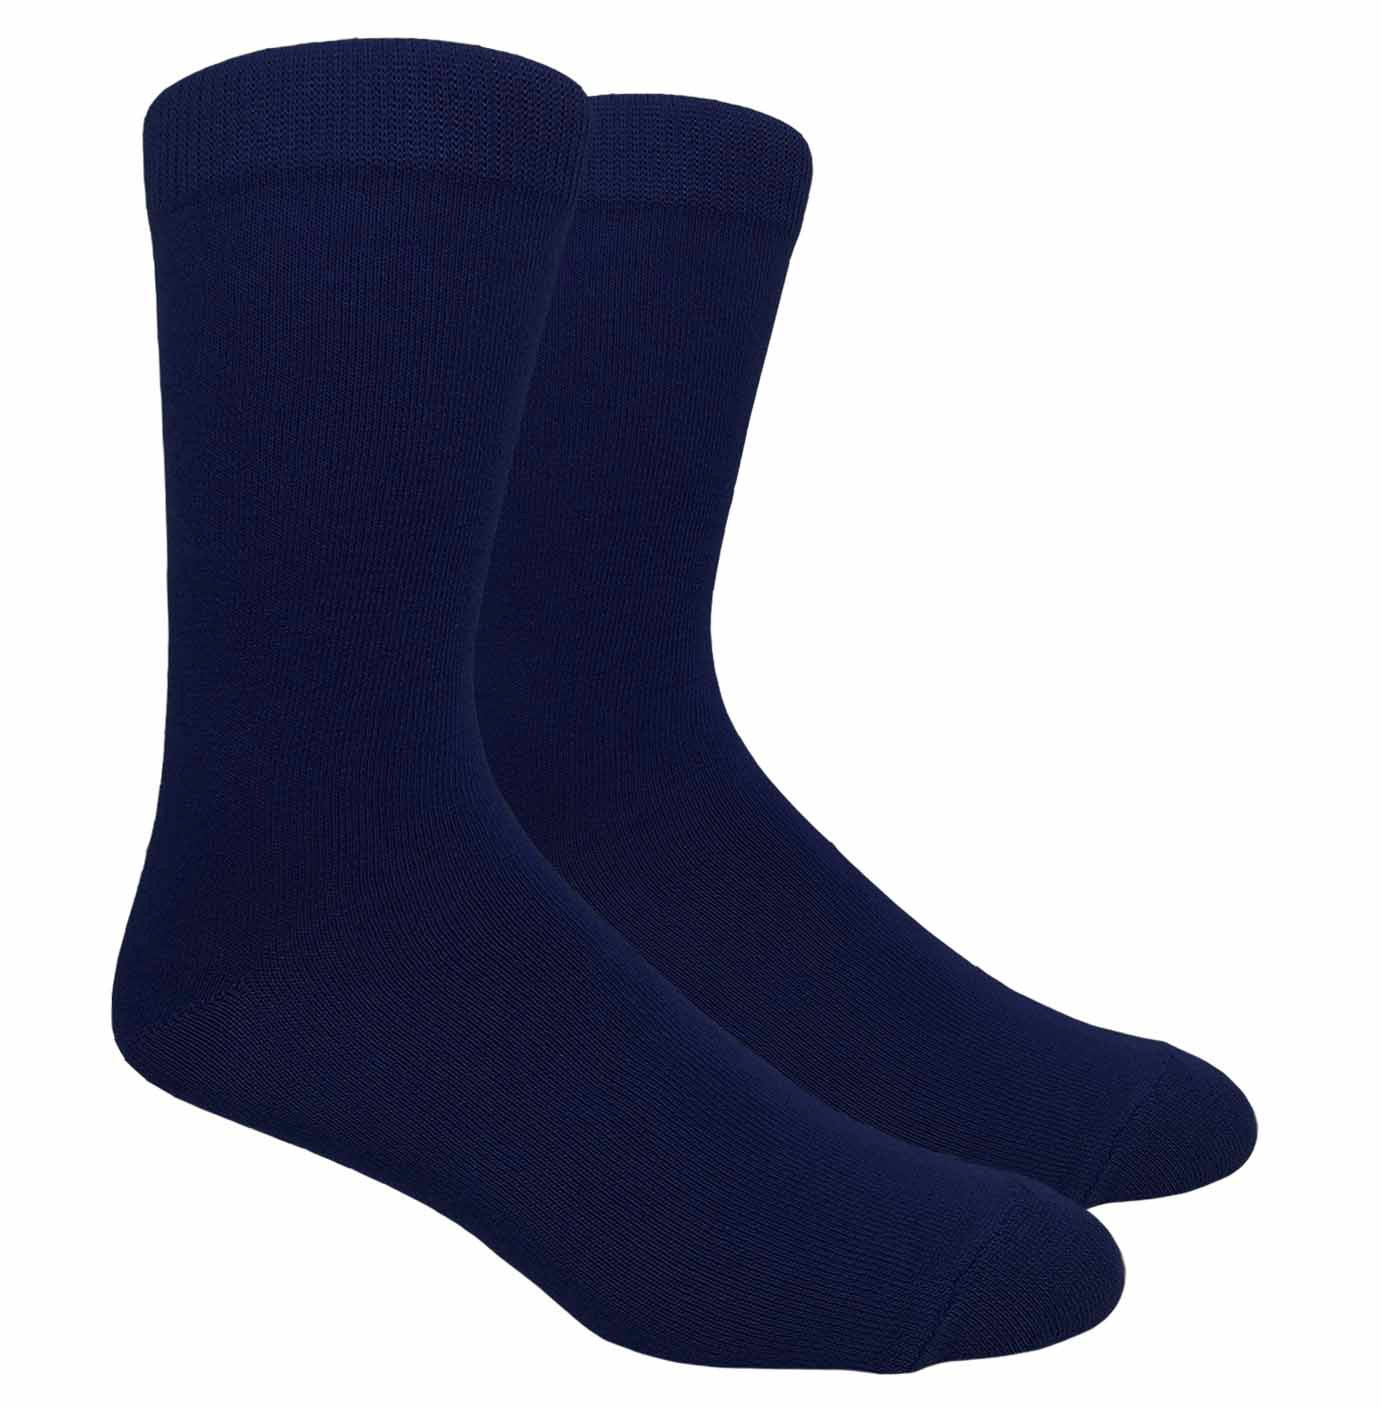 Black Label Plain Dress Socks - Navy